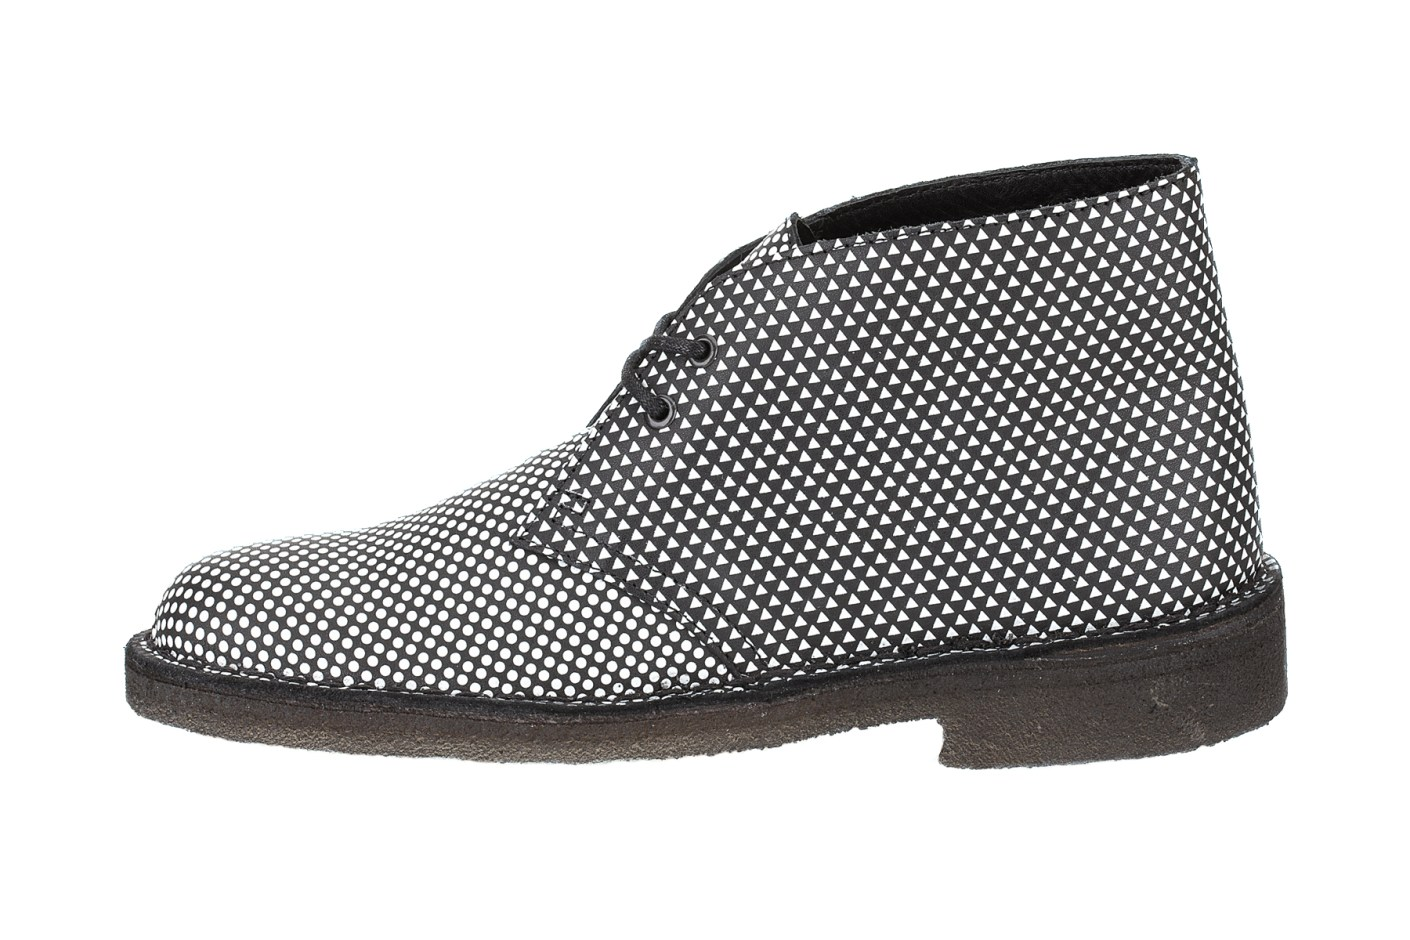 Image of PATTERNITY x Clarks 2014 Fall Desert Boot Collection